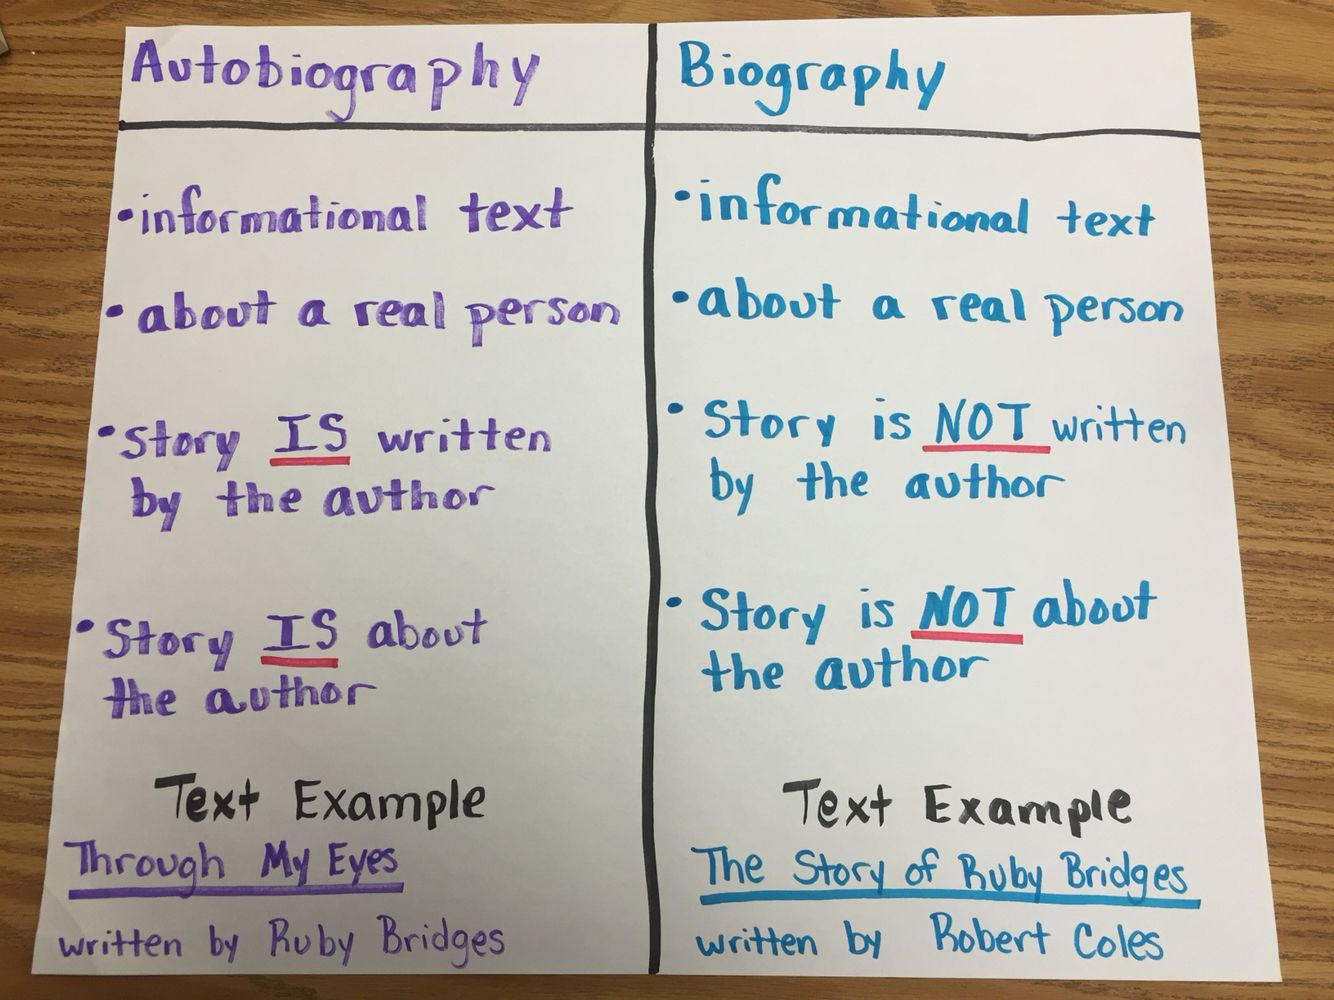 Autobiography Vs Biography Here S A Quick Reference